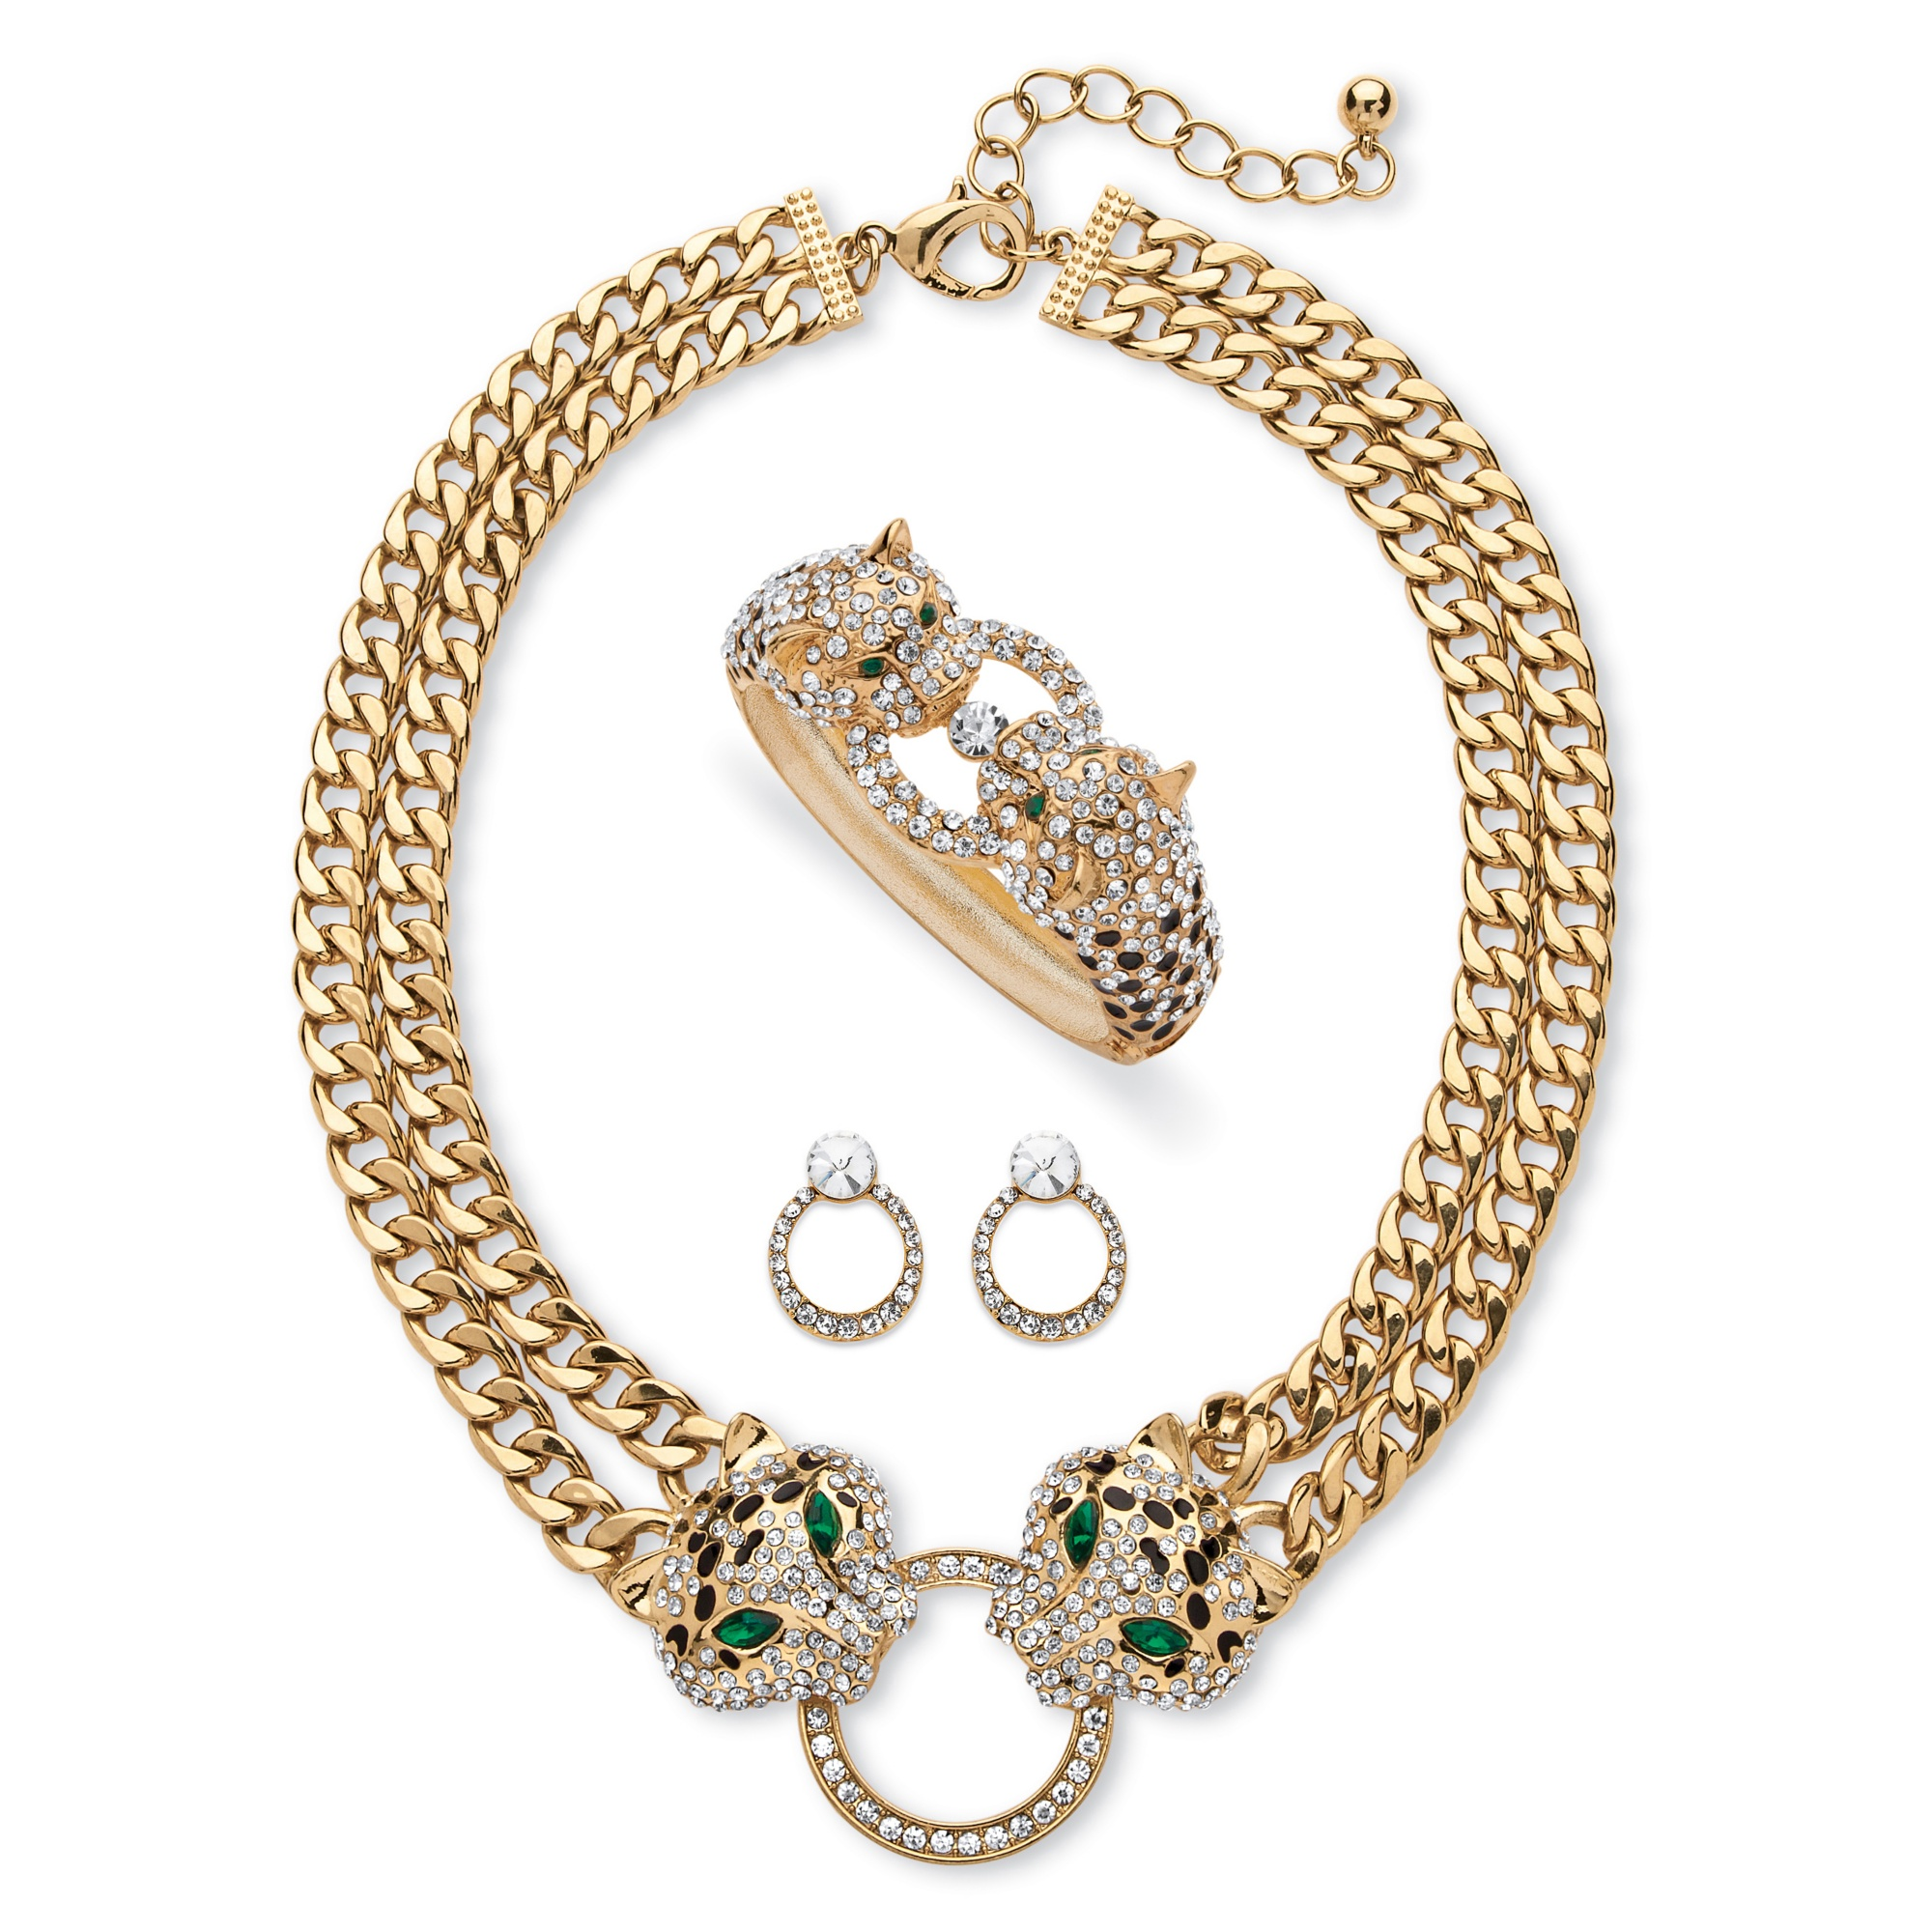 Pave Crystal and Simulated Emerald 3